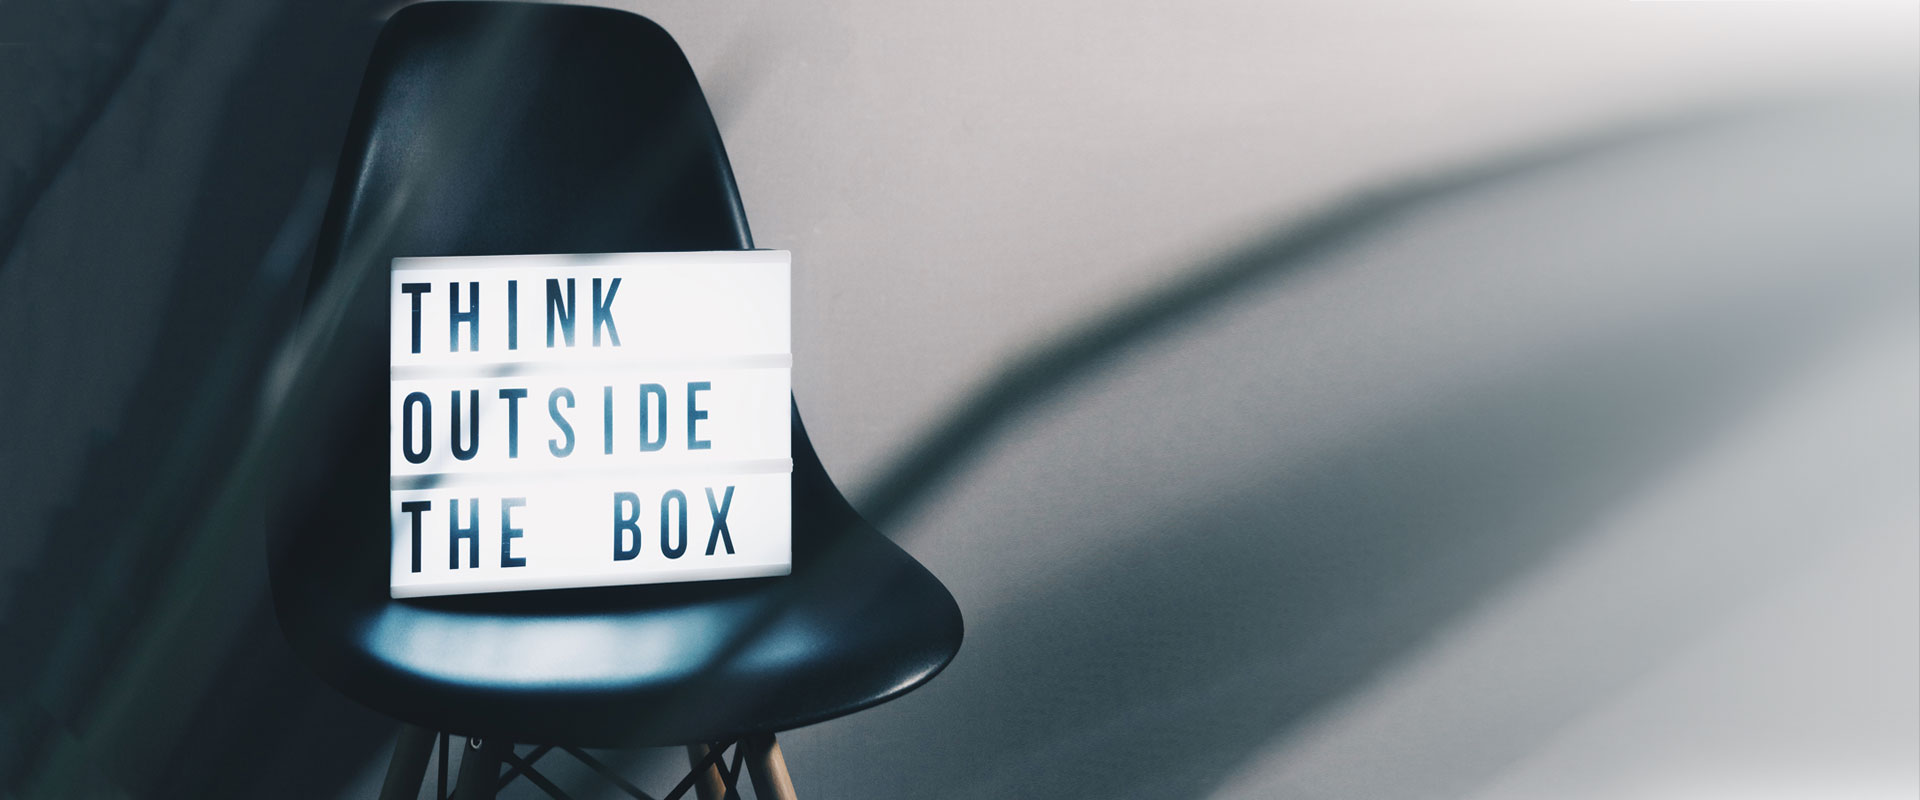 Marketingbetreuung Dortmund - Think outside the box